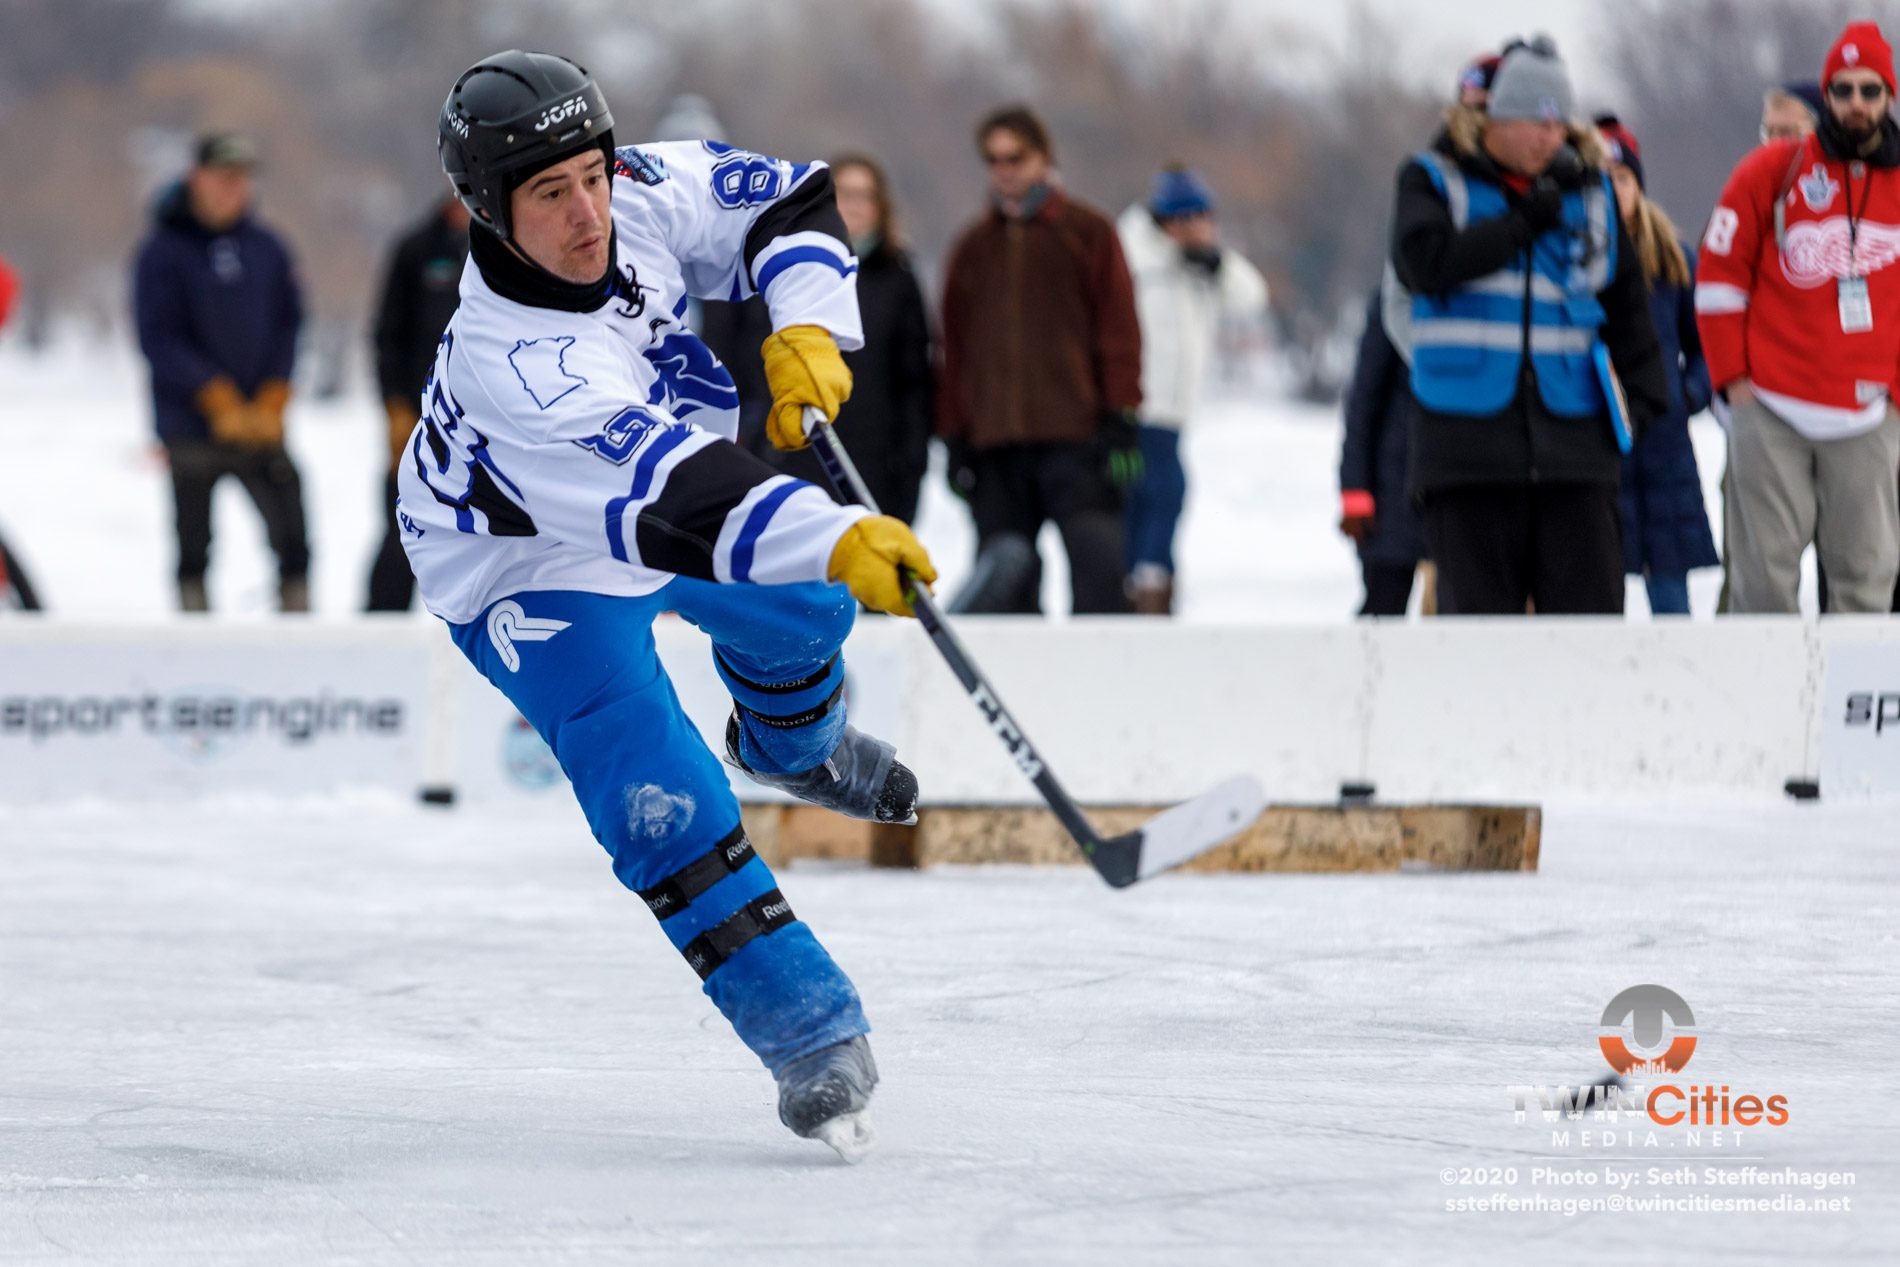 January 26, 2020 - Minneapolis, Minnesota, United States -  RJ Ryan Construction play Hendy Homes Tail Gators for the Open championship during the U.S. Pond Hockey Championships on Lake Nokomis. (Photo by Seth Steffenhagen/Steffenhagen Photography)